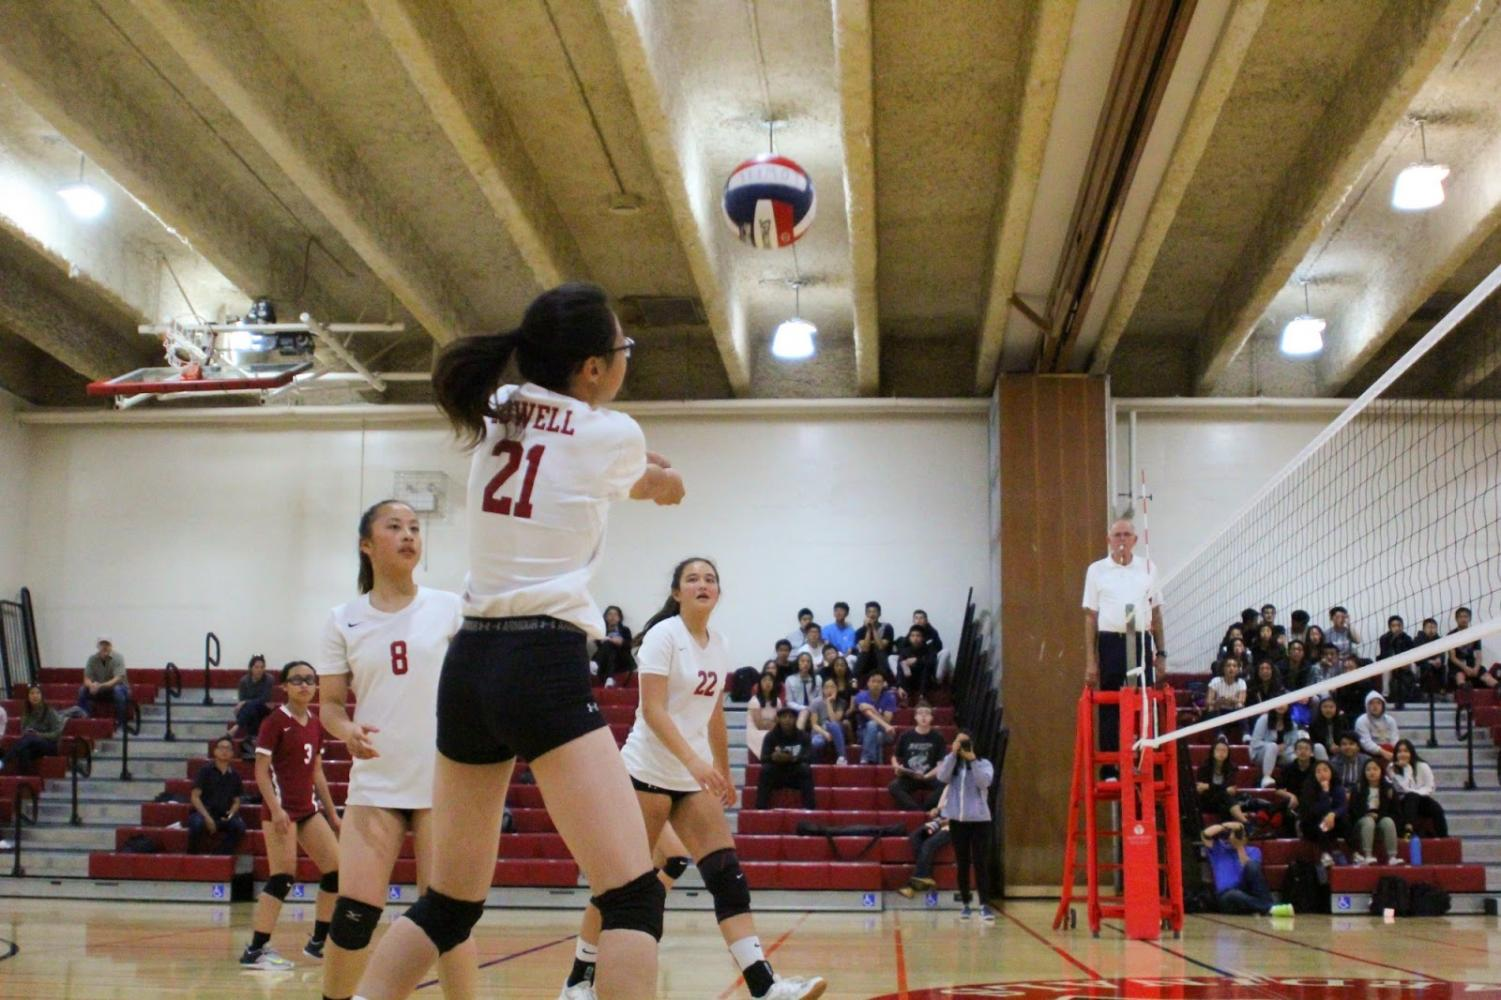 Freshman Heather Liu bumps the ball back over the net on Sept. 14 against the Washington Eagles in the annual Battle of the Birds volleyball game.